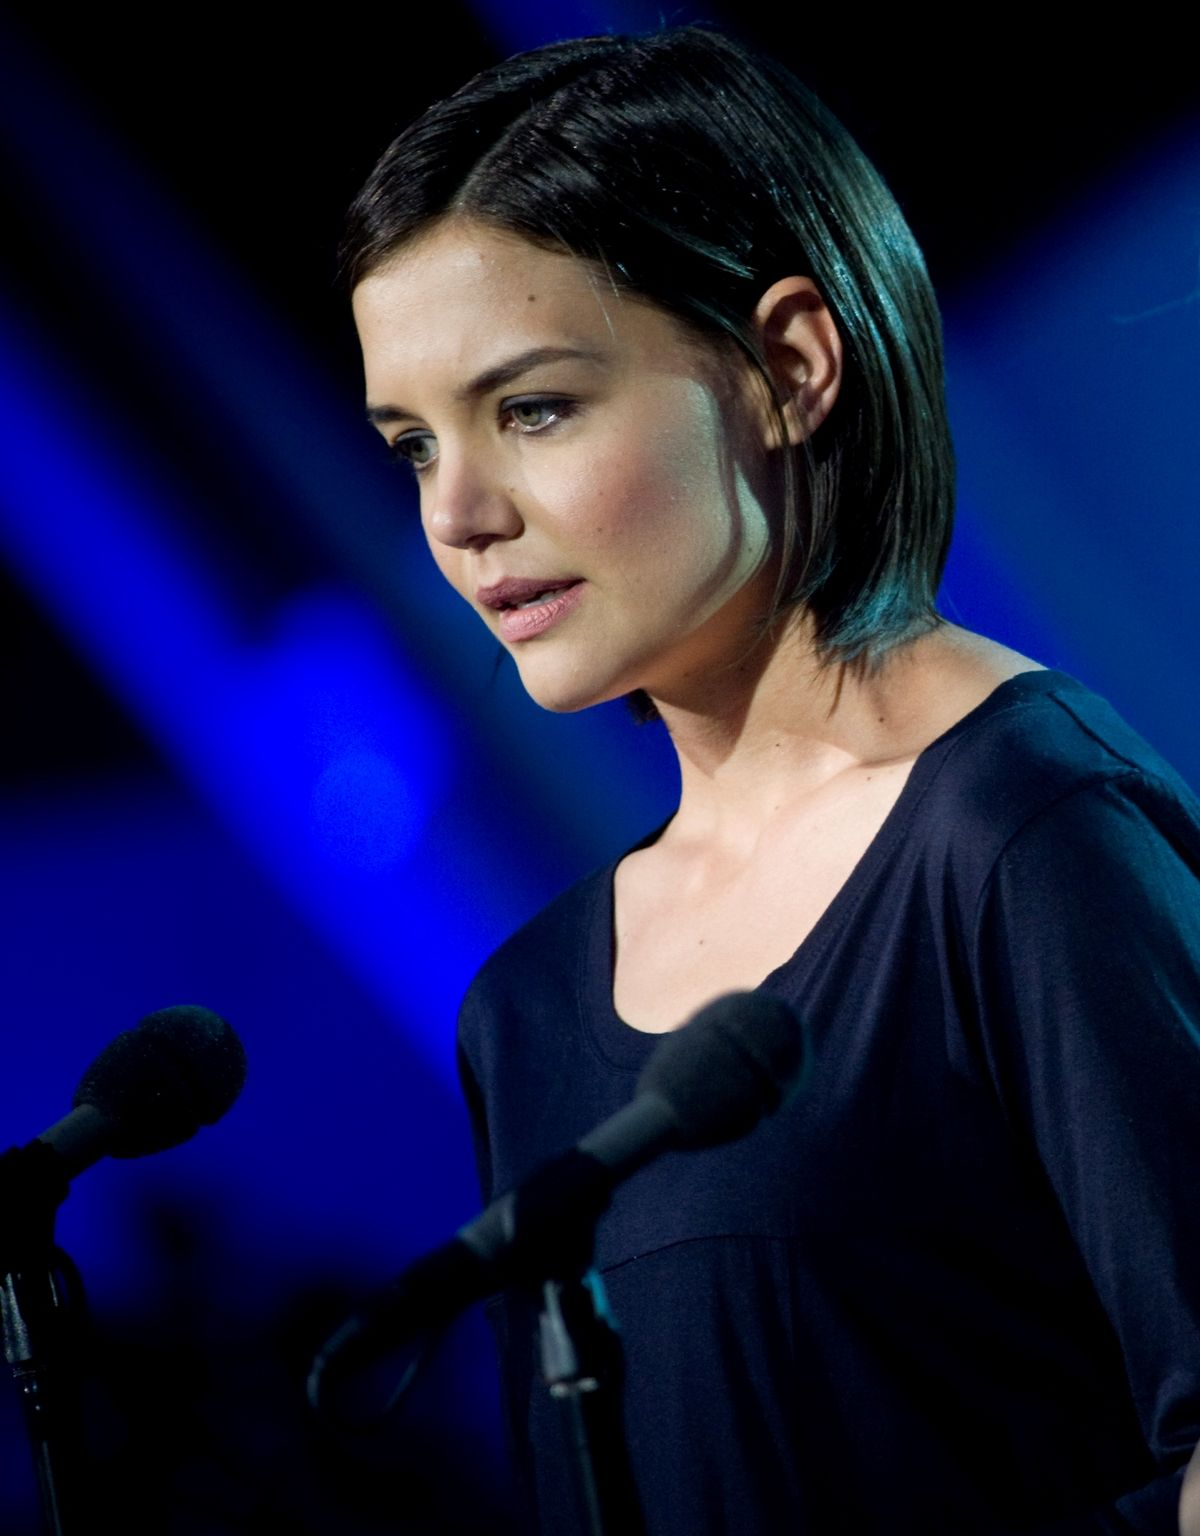 Katie Holmes - Simple English Wikipedia, the free encyclopedia Katie Holmes